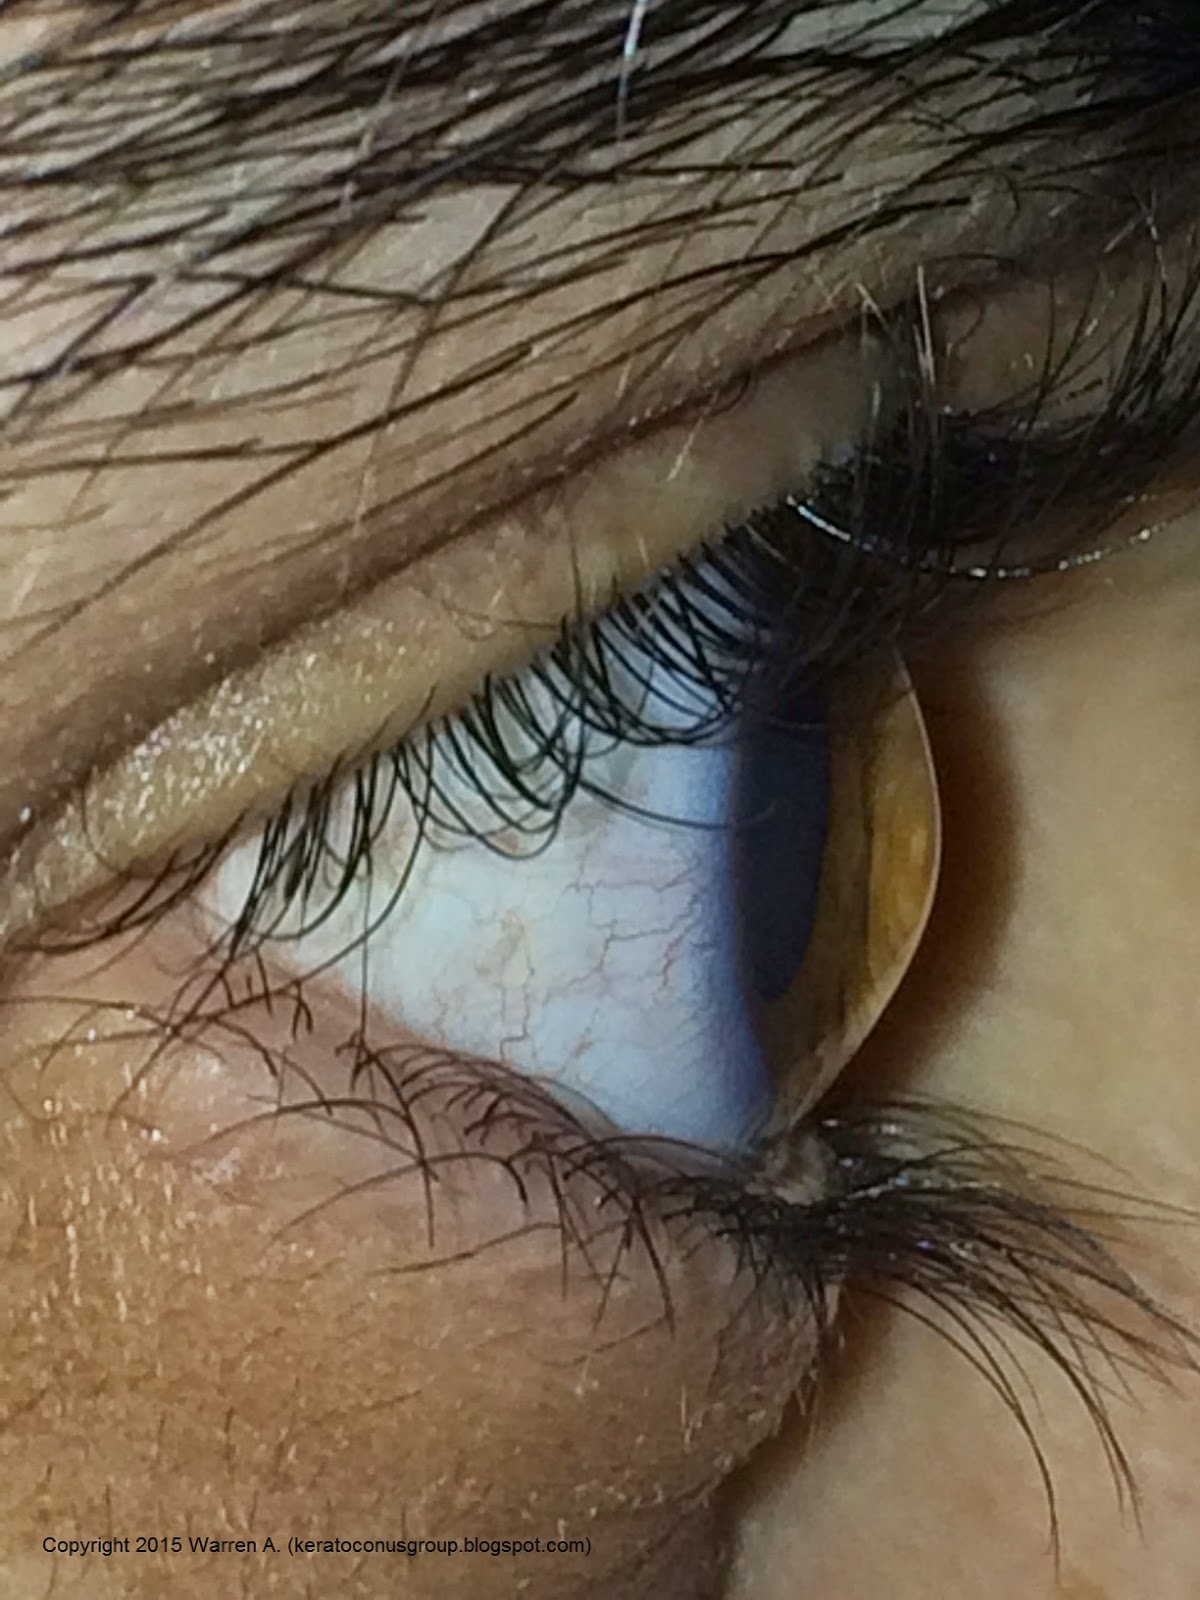 Side view of the cornea in a patient with keratoconus. Photo by Warren A., a member of our Facebook community